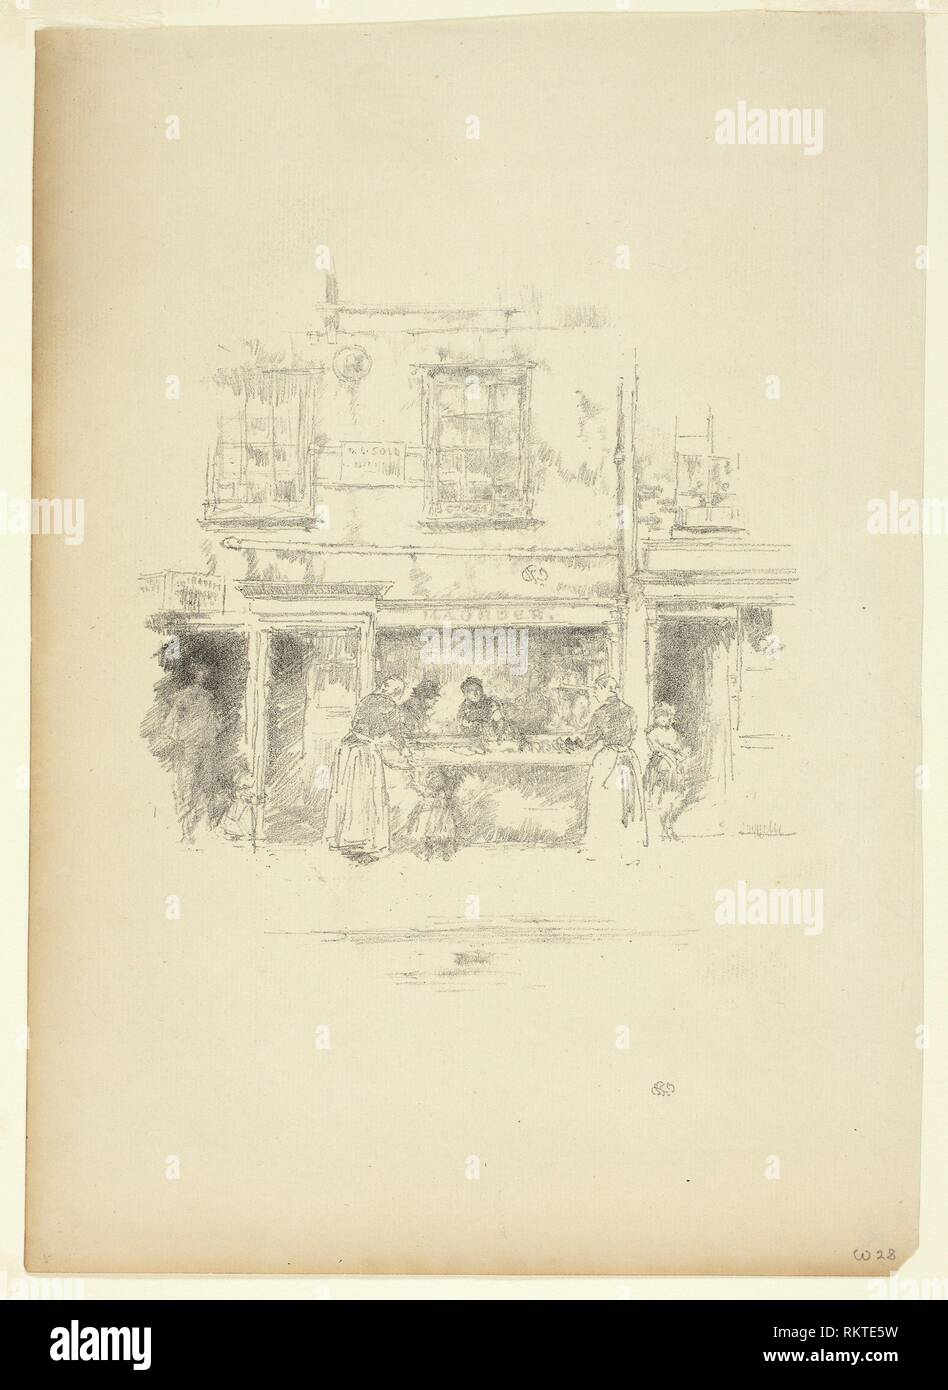 Maunder's Fish Shop, Chelsea - 1890 - James McNeill Whistler American, 1834-1903 - Artist: James McNeill Whistler, Origin: United States, Date: - Stock Image